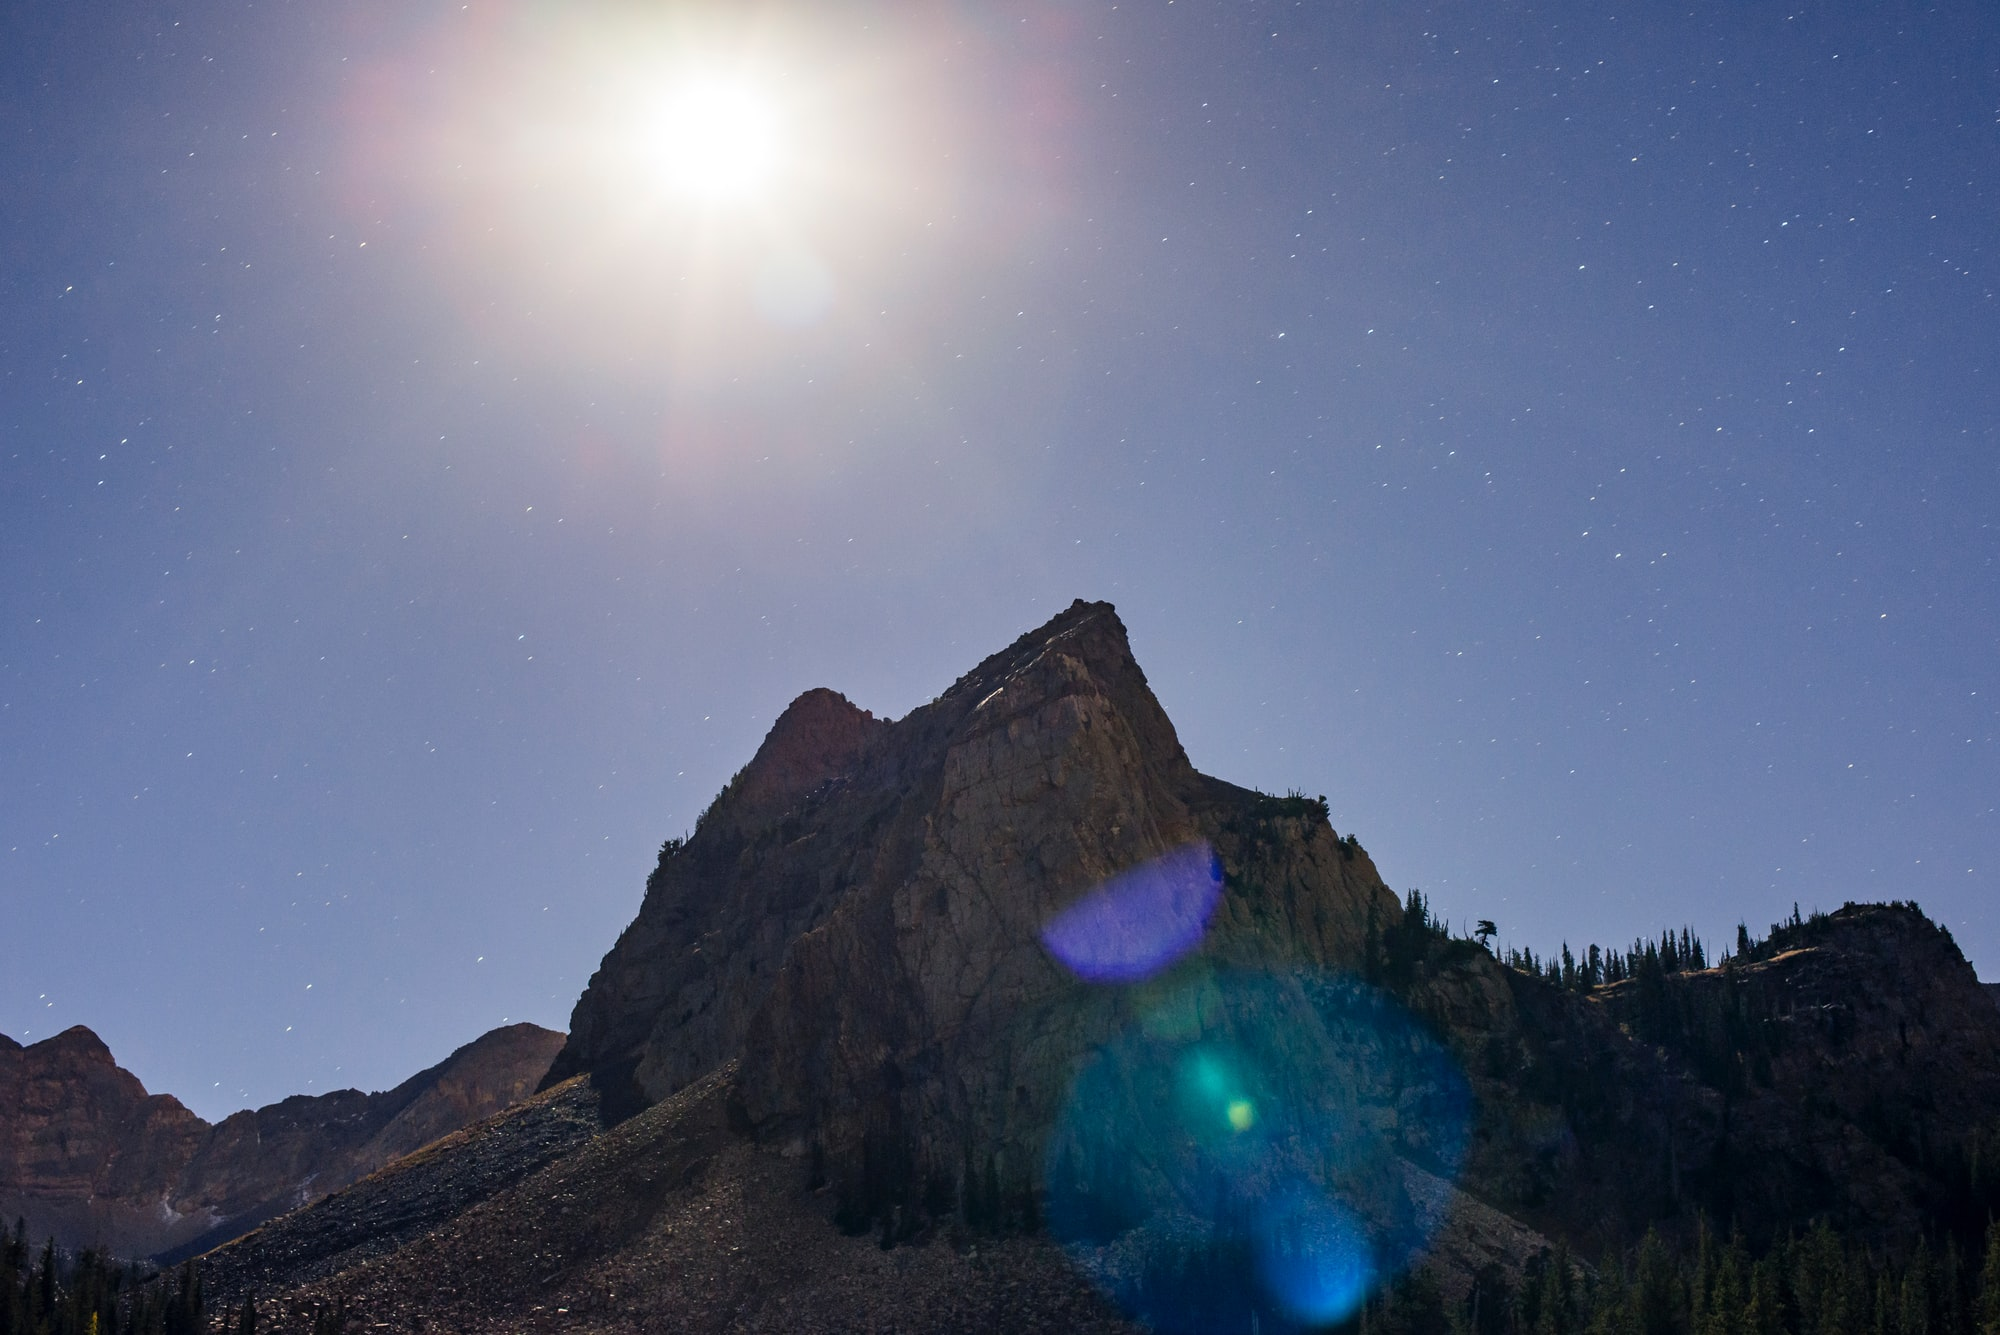 I hiked up to Lake Blanch in Big Cottonwood Canyon with a guy named Eric I'd met on Instagram to photograph lake Blanche at night and we got some pretty great shots from that trip. It was a full moon, we hiked with out headlamps almost the entire way.